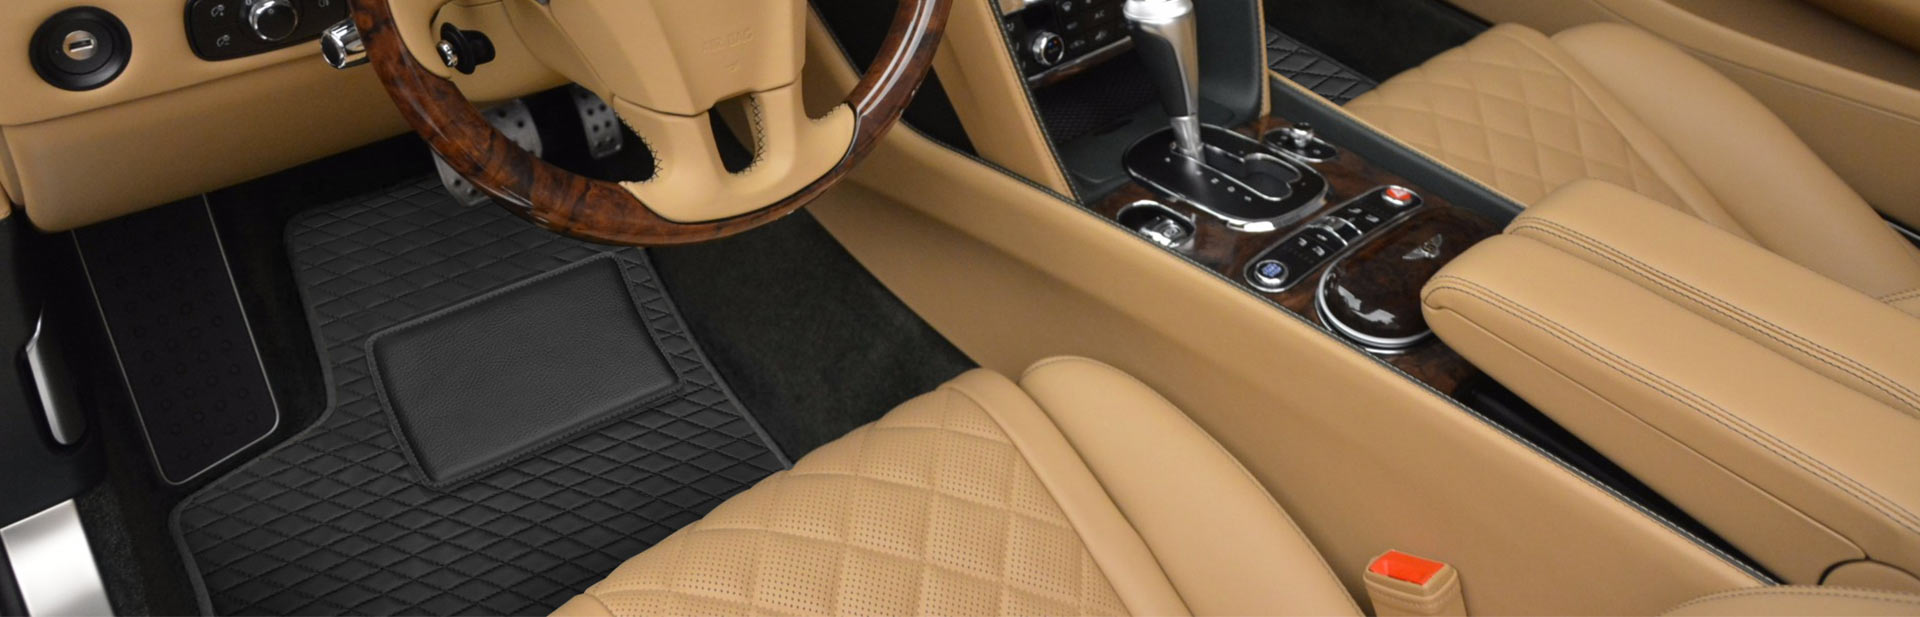 Car Floor Mats for Jaguar